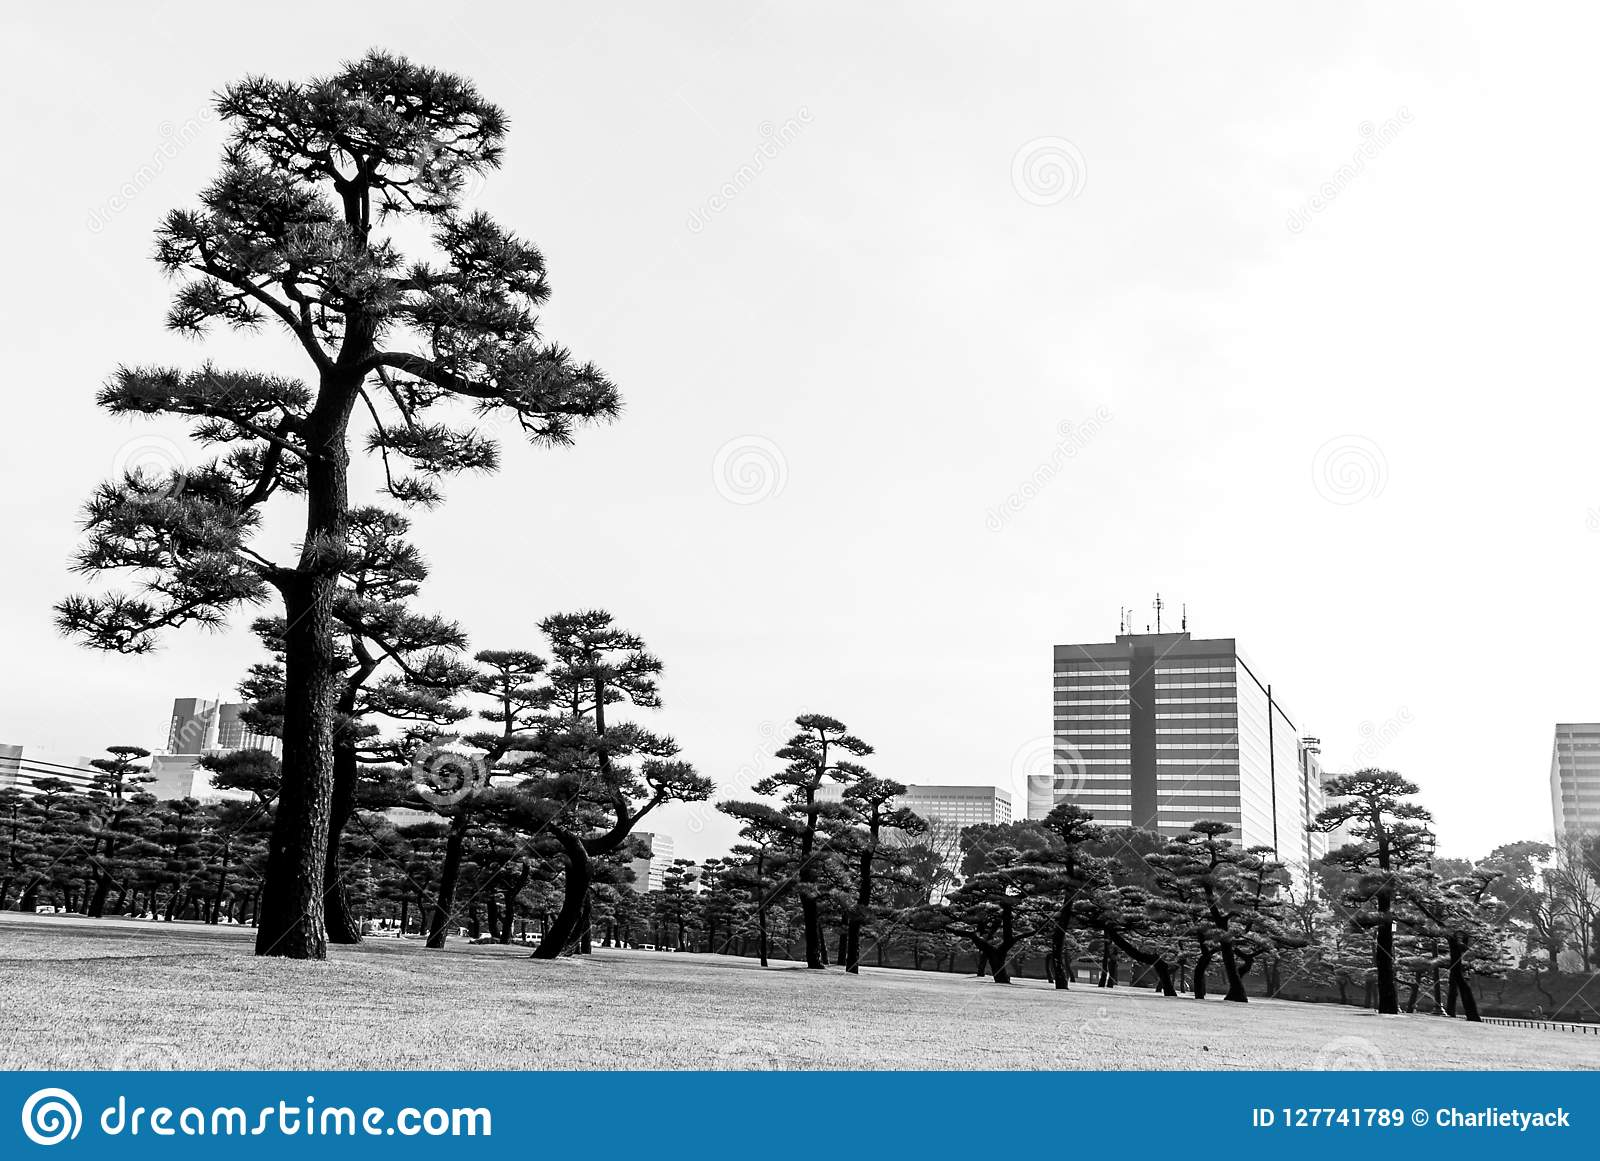 Urban Forest - Tokyo - city and trees meet